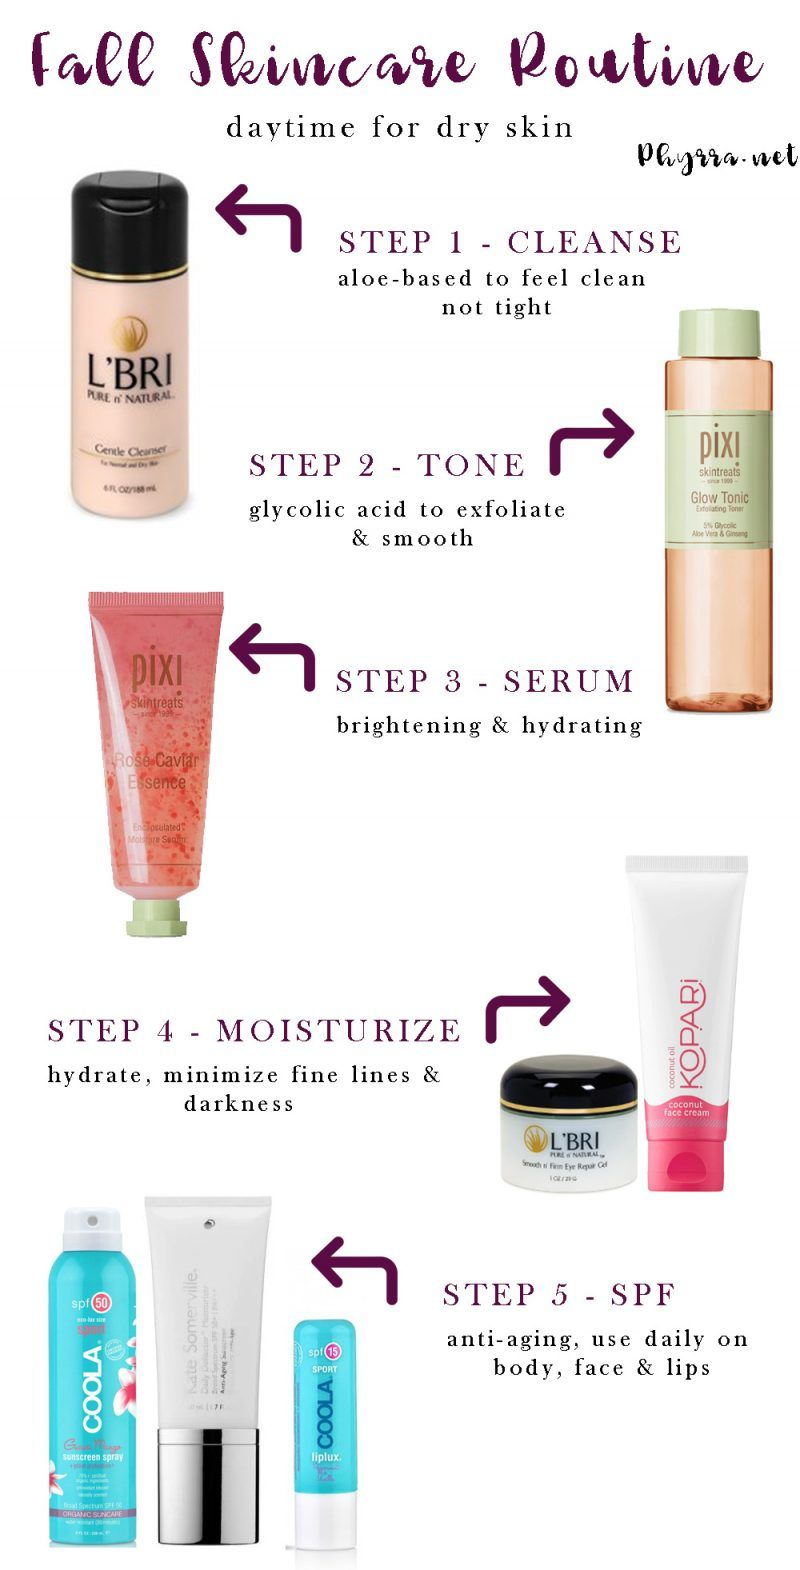 Fall Skincare Routine For Dry Skin My Current Day Night Routines Fall Skincare Routine Autumn Skincare Skin Care Routine